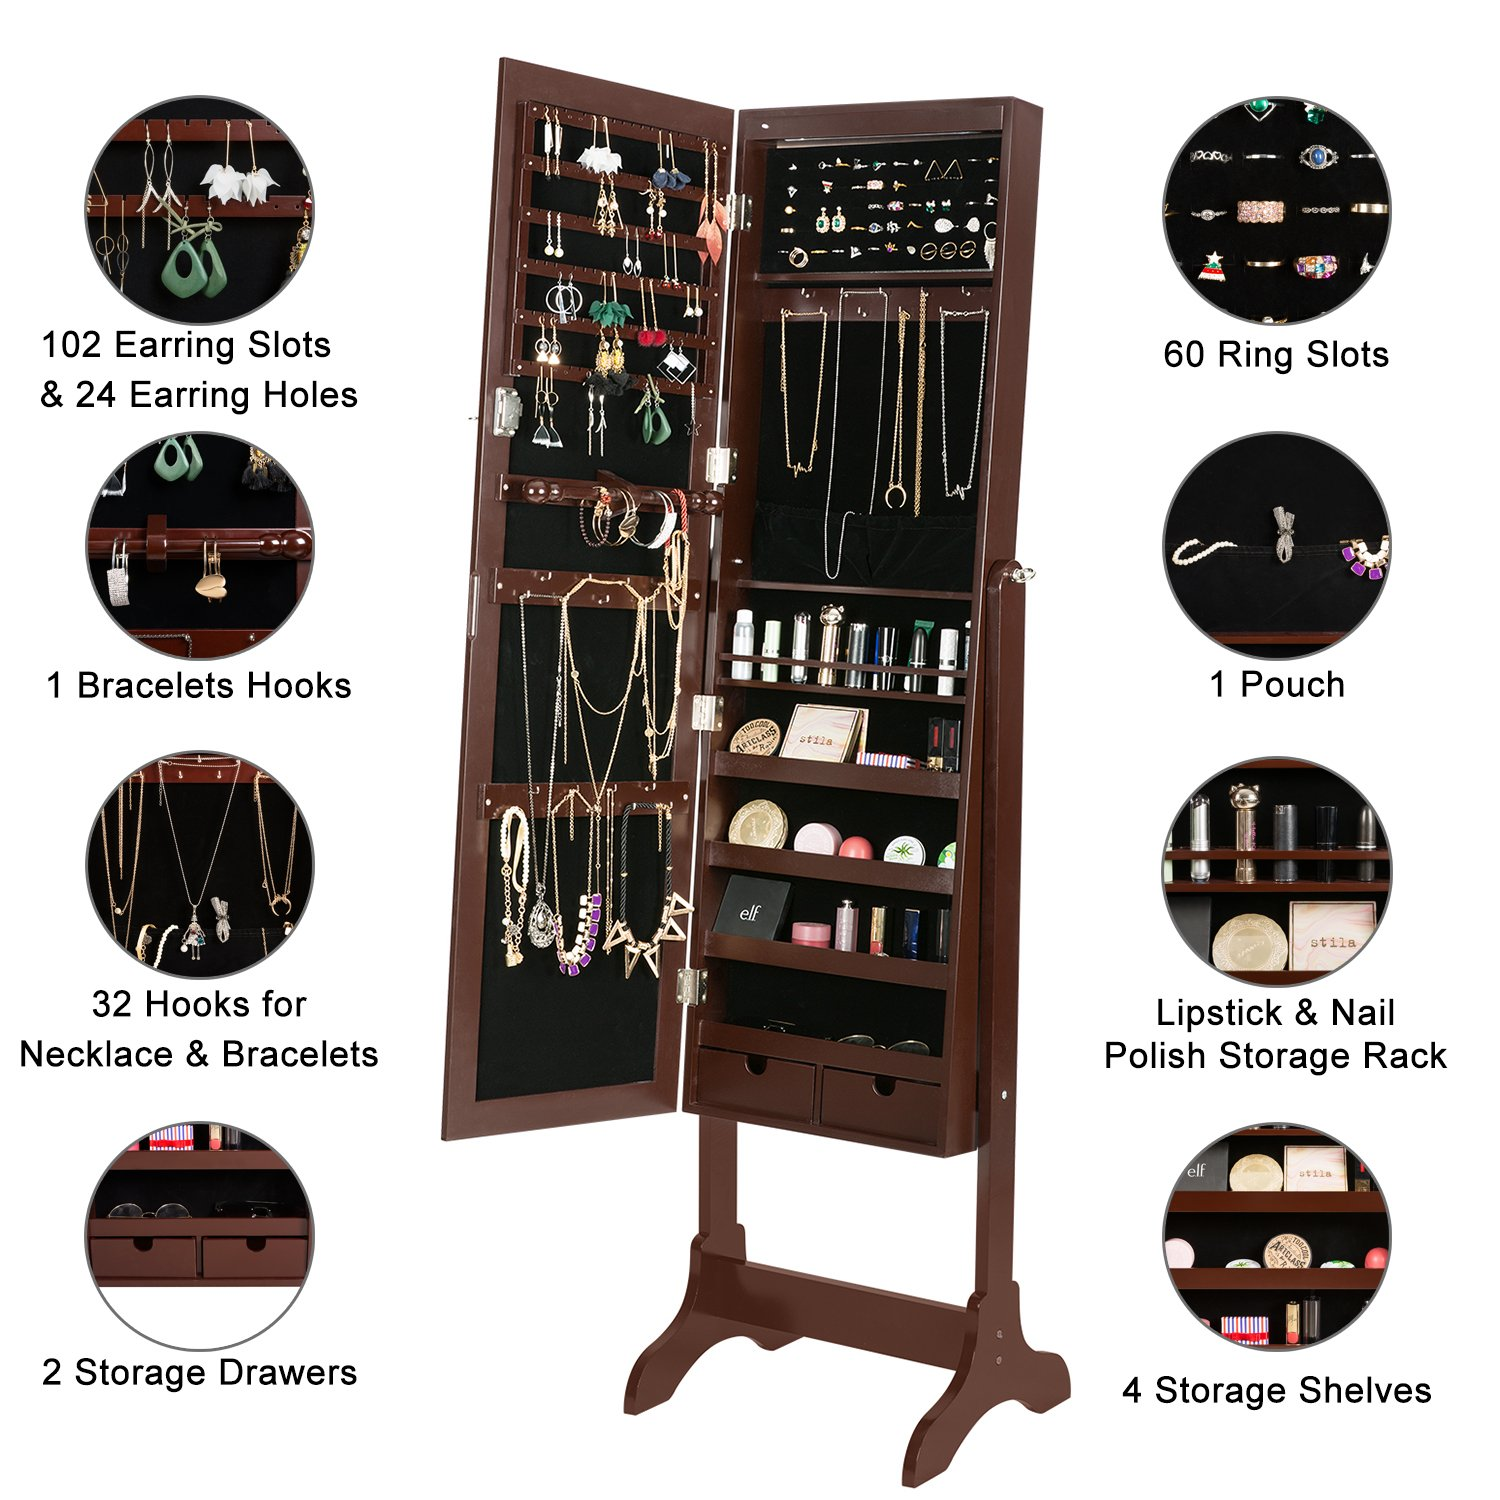 HollyHOME Mirrored Jewelry Cabinet Lockable Standing Jewelry Armoire Holder Organizer with LED Lights, 4 Angle Adjustable, Brown by HollyHOME (Image #3)